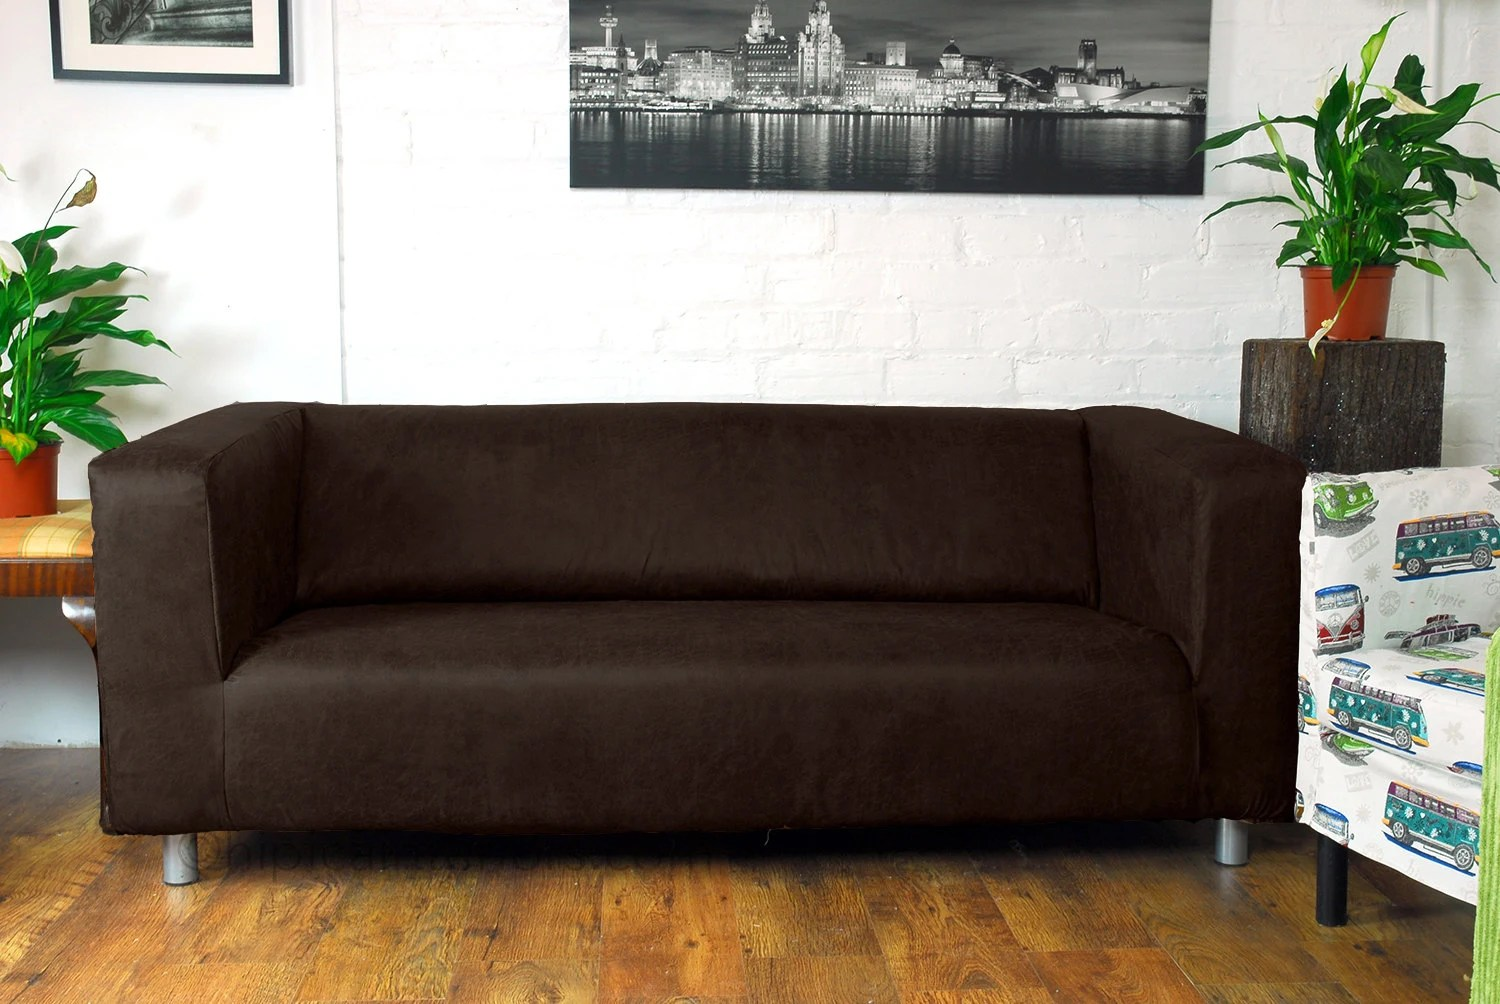 Sofa Fabric Name Ikea Klippan 2 Seat Love Seat Slip Cover In Dark Brown